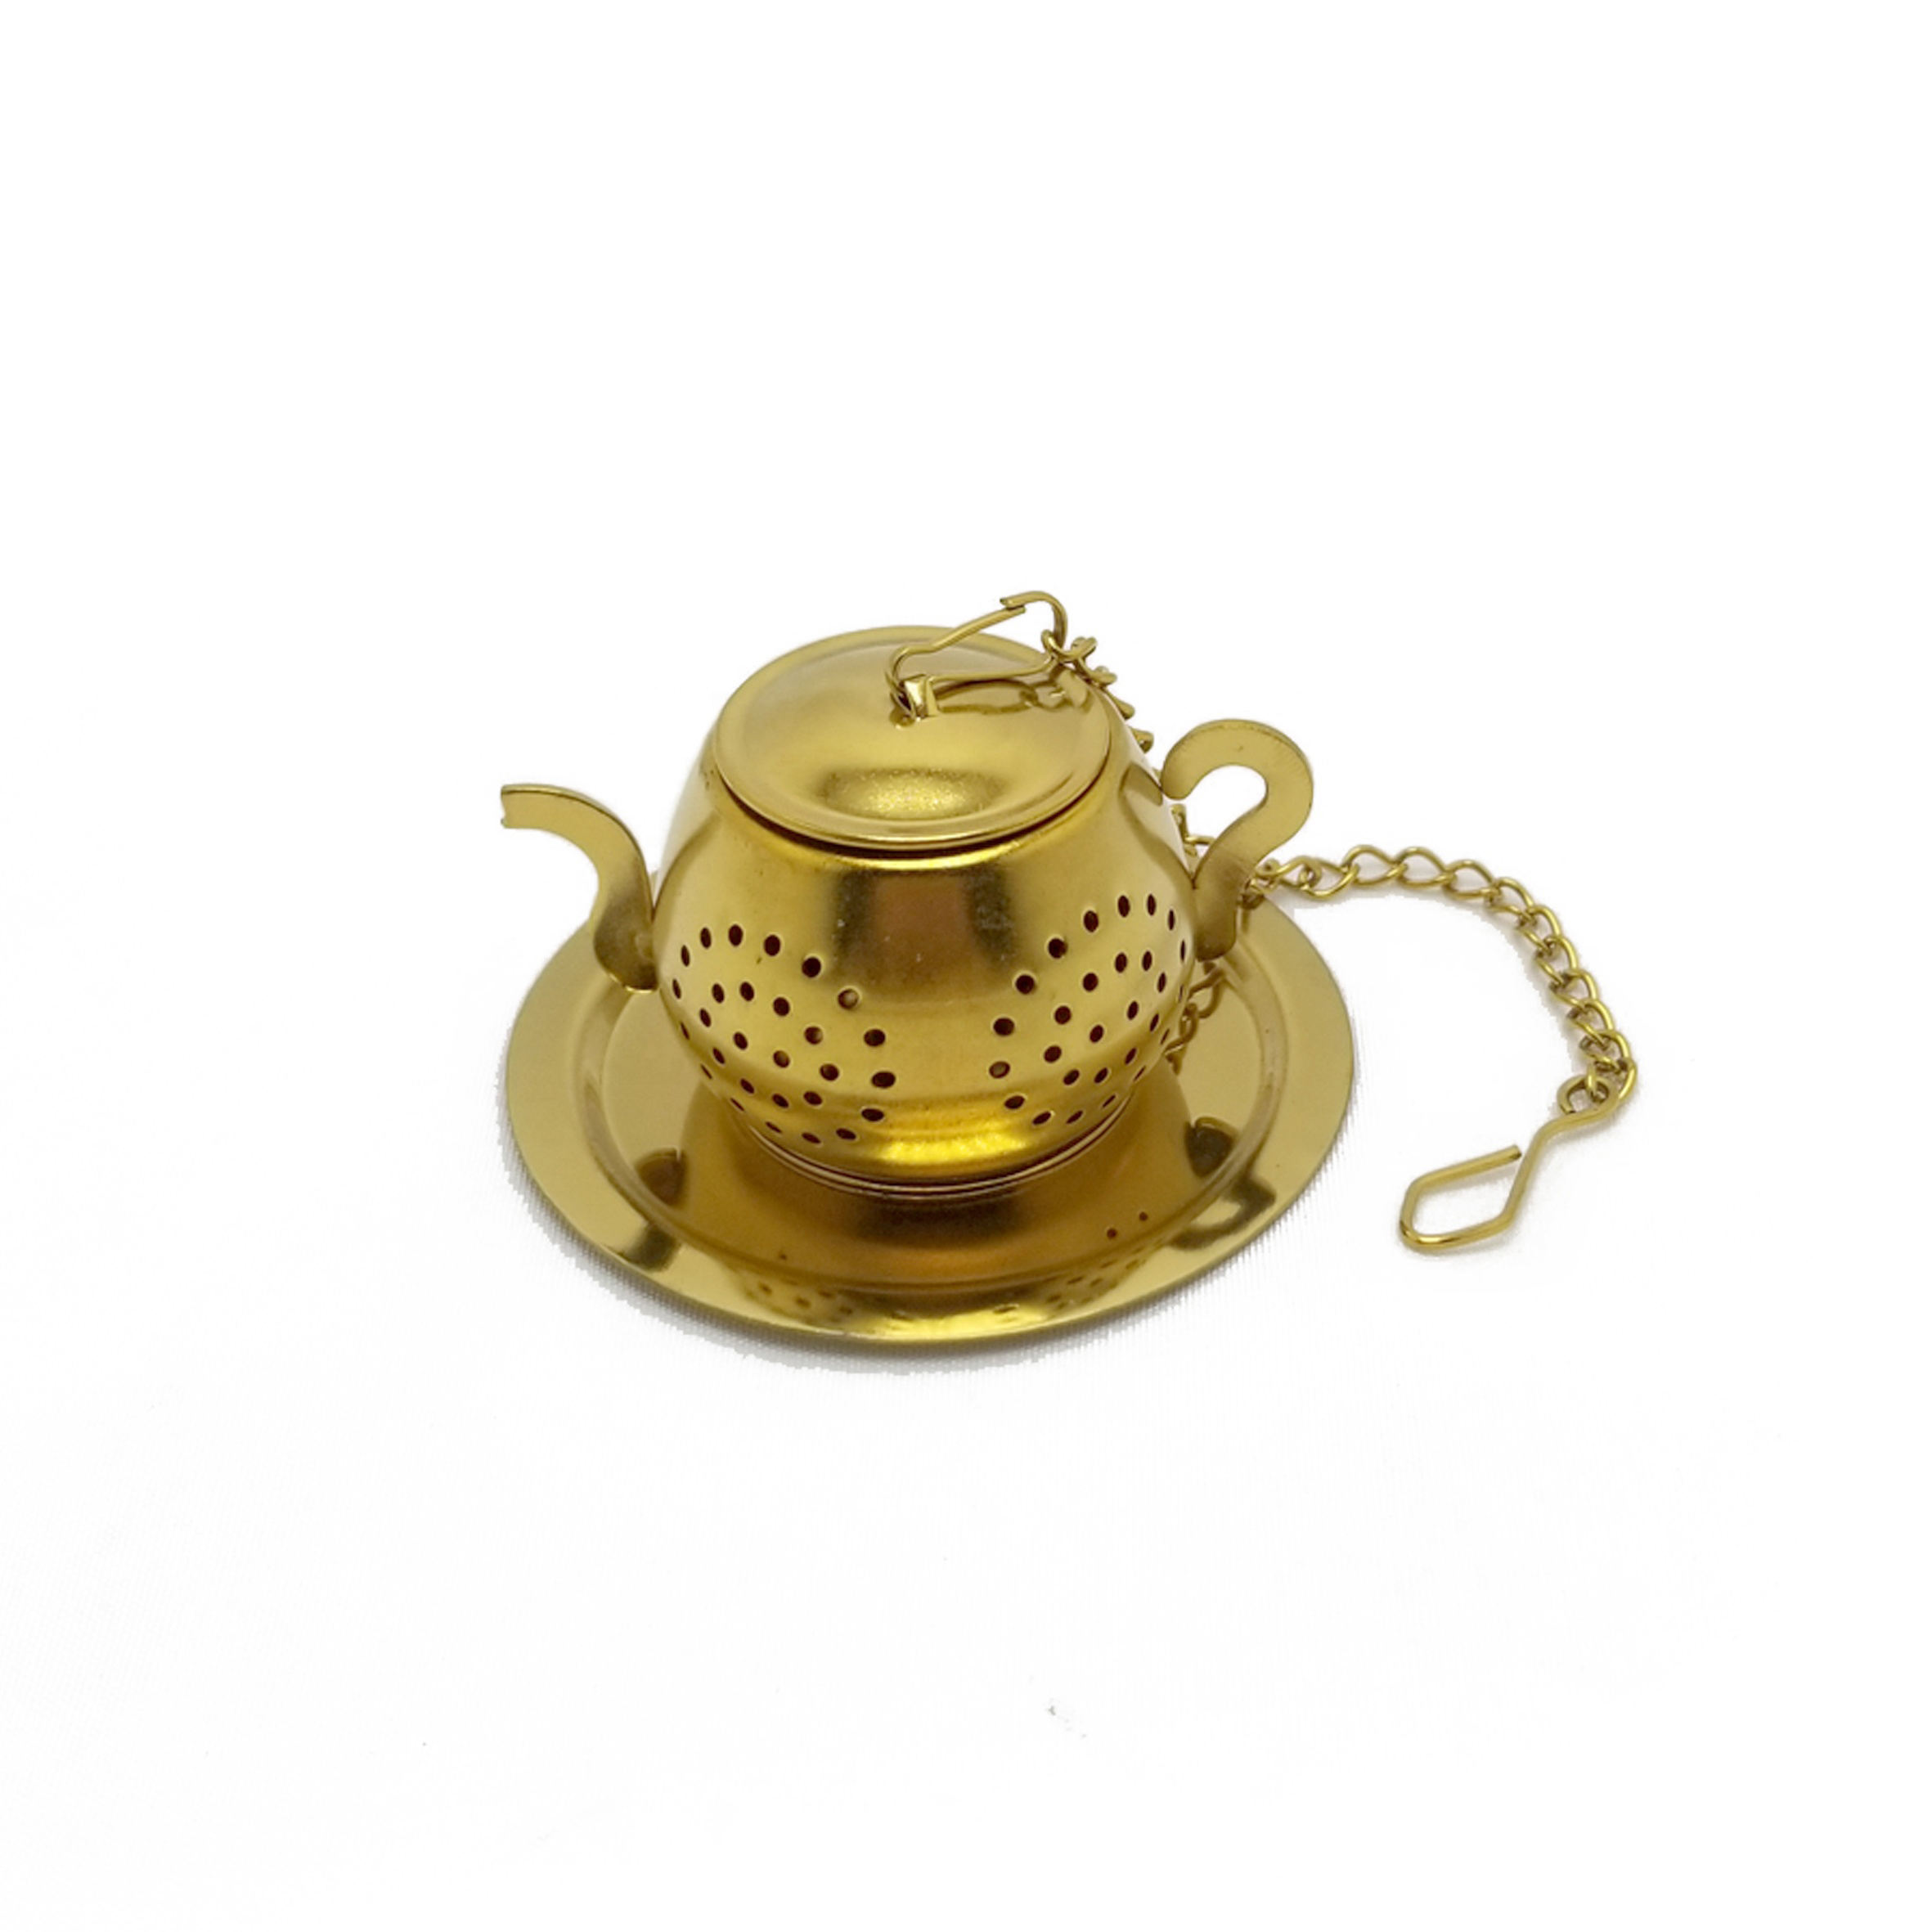 Stainless steel titanium gold plating teapot tea infuser tea ball with chain